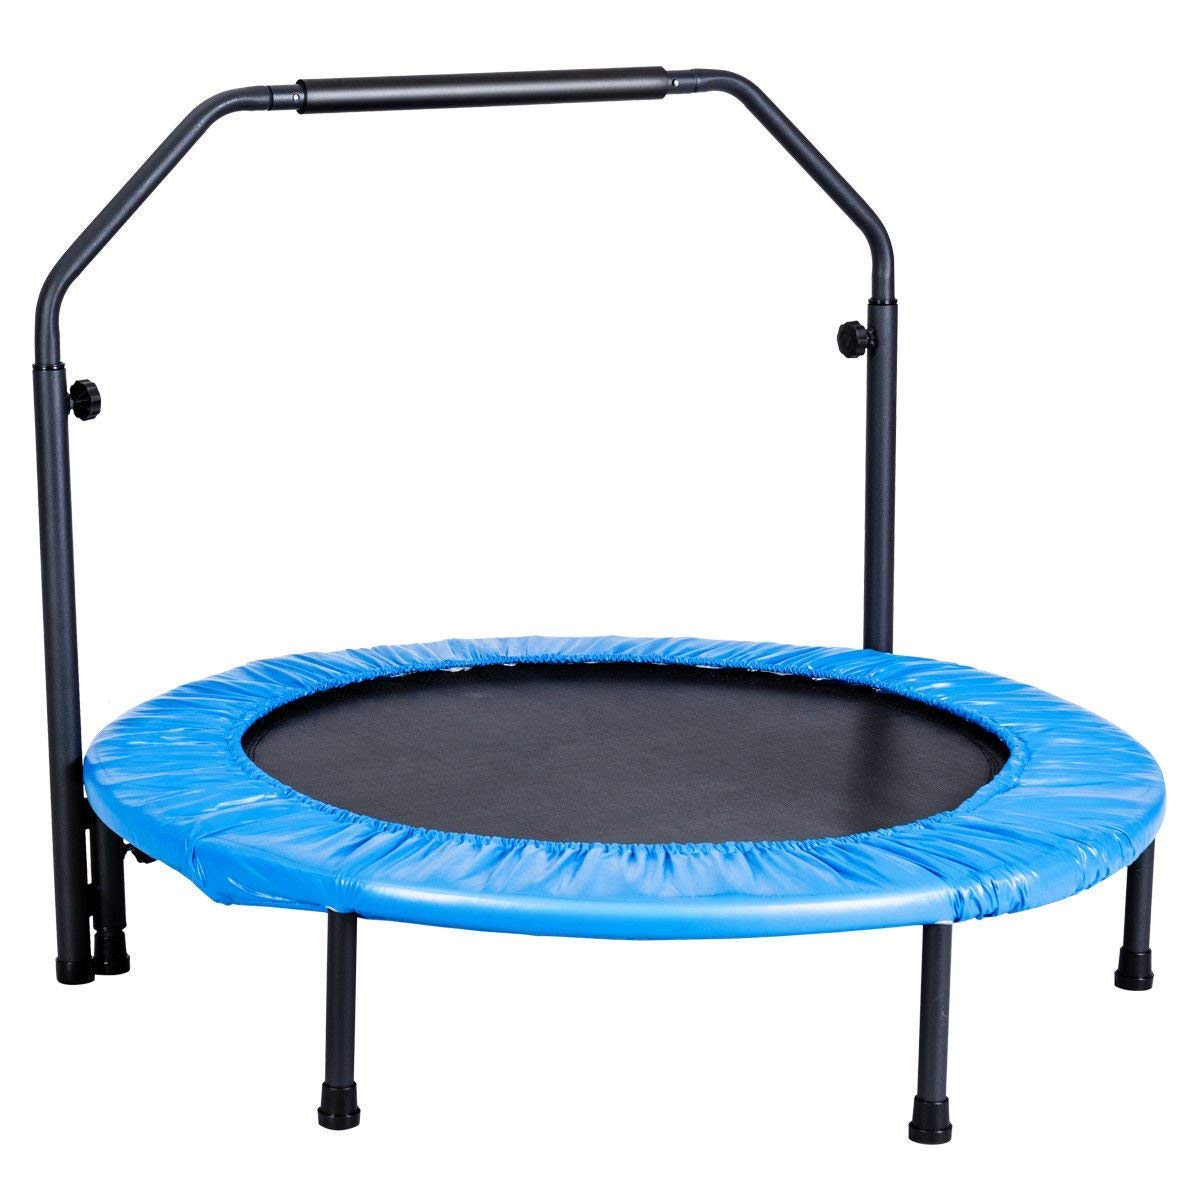 GYMAX Mini Trampoline, Rebounder Exercise Trampoline for Outdoor Indoor Fitness Workout, with Handle Rail by GYMAX (Image #4)